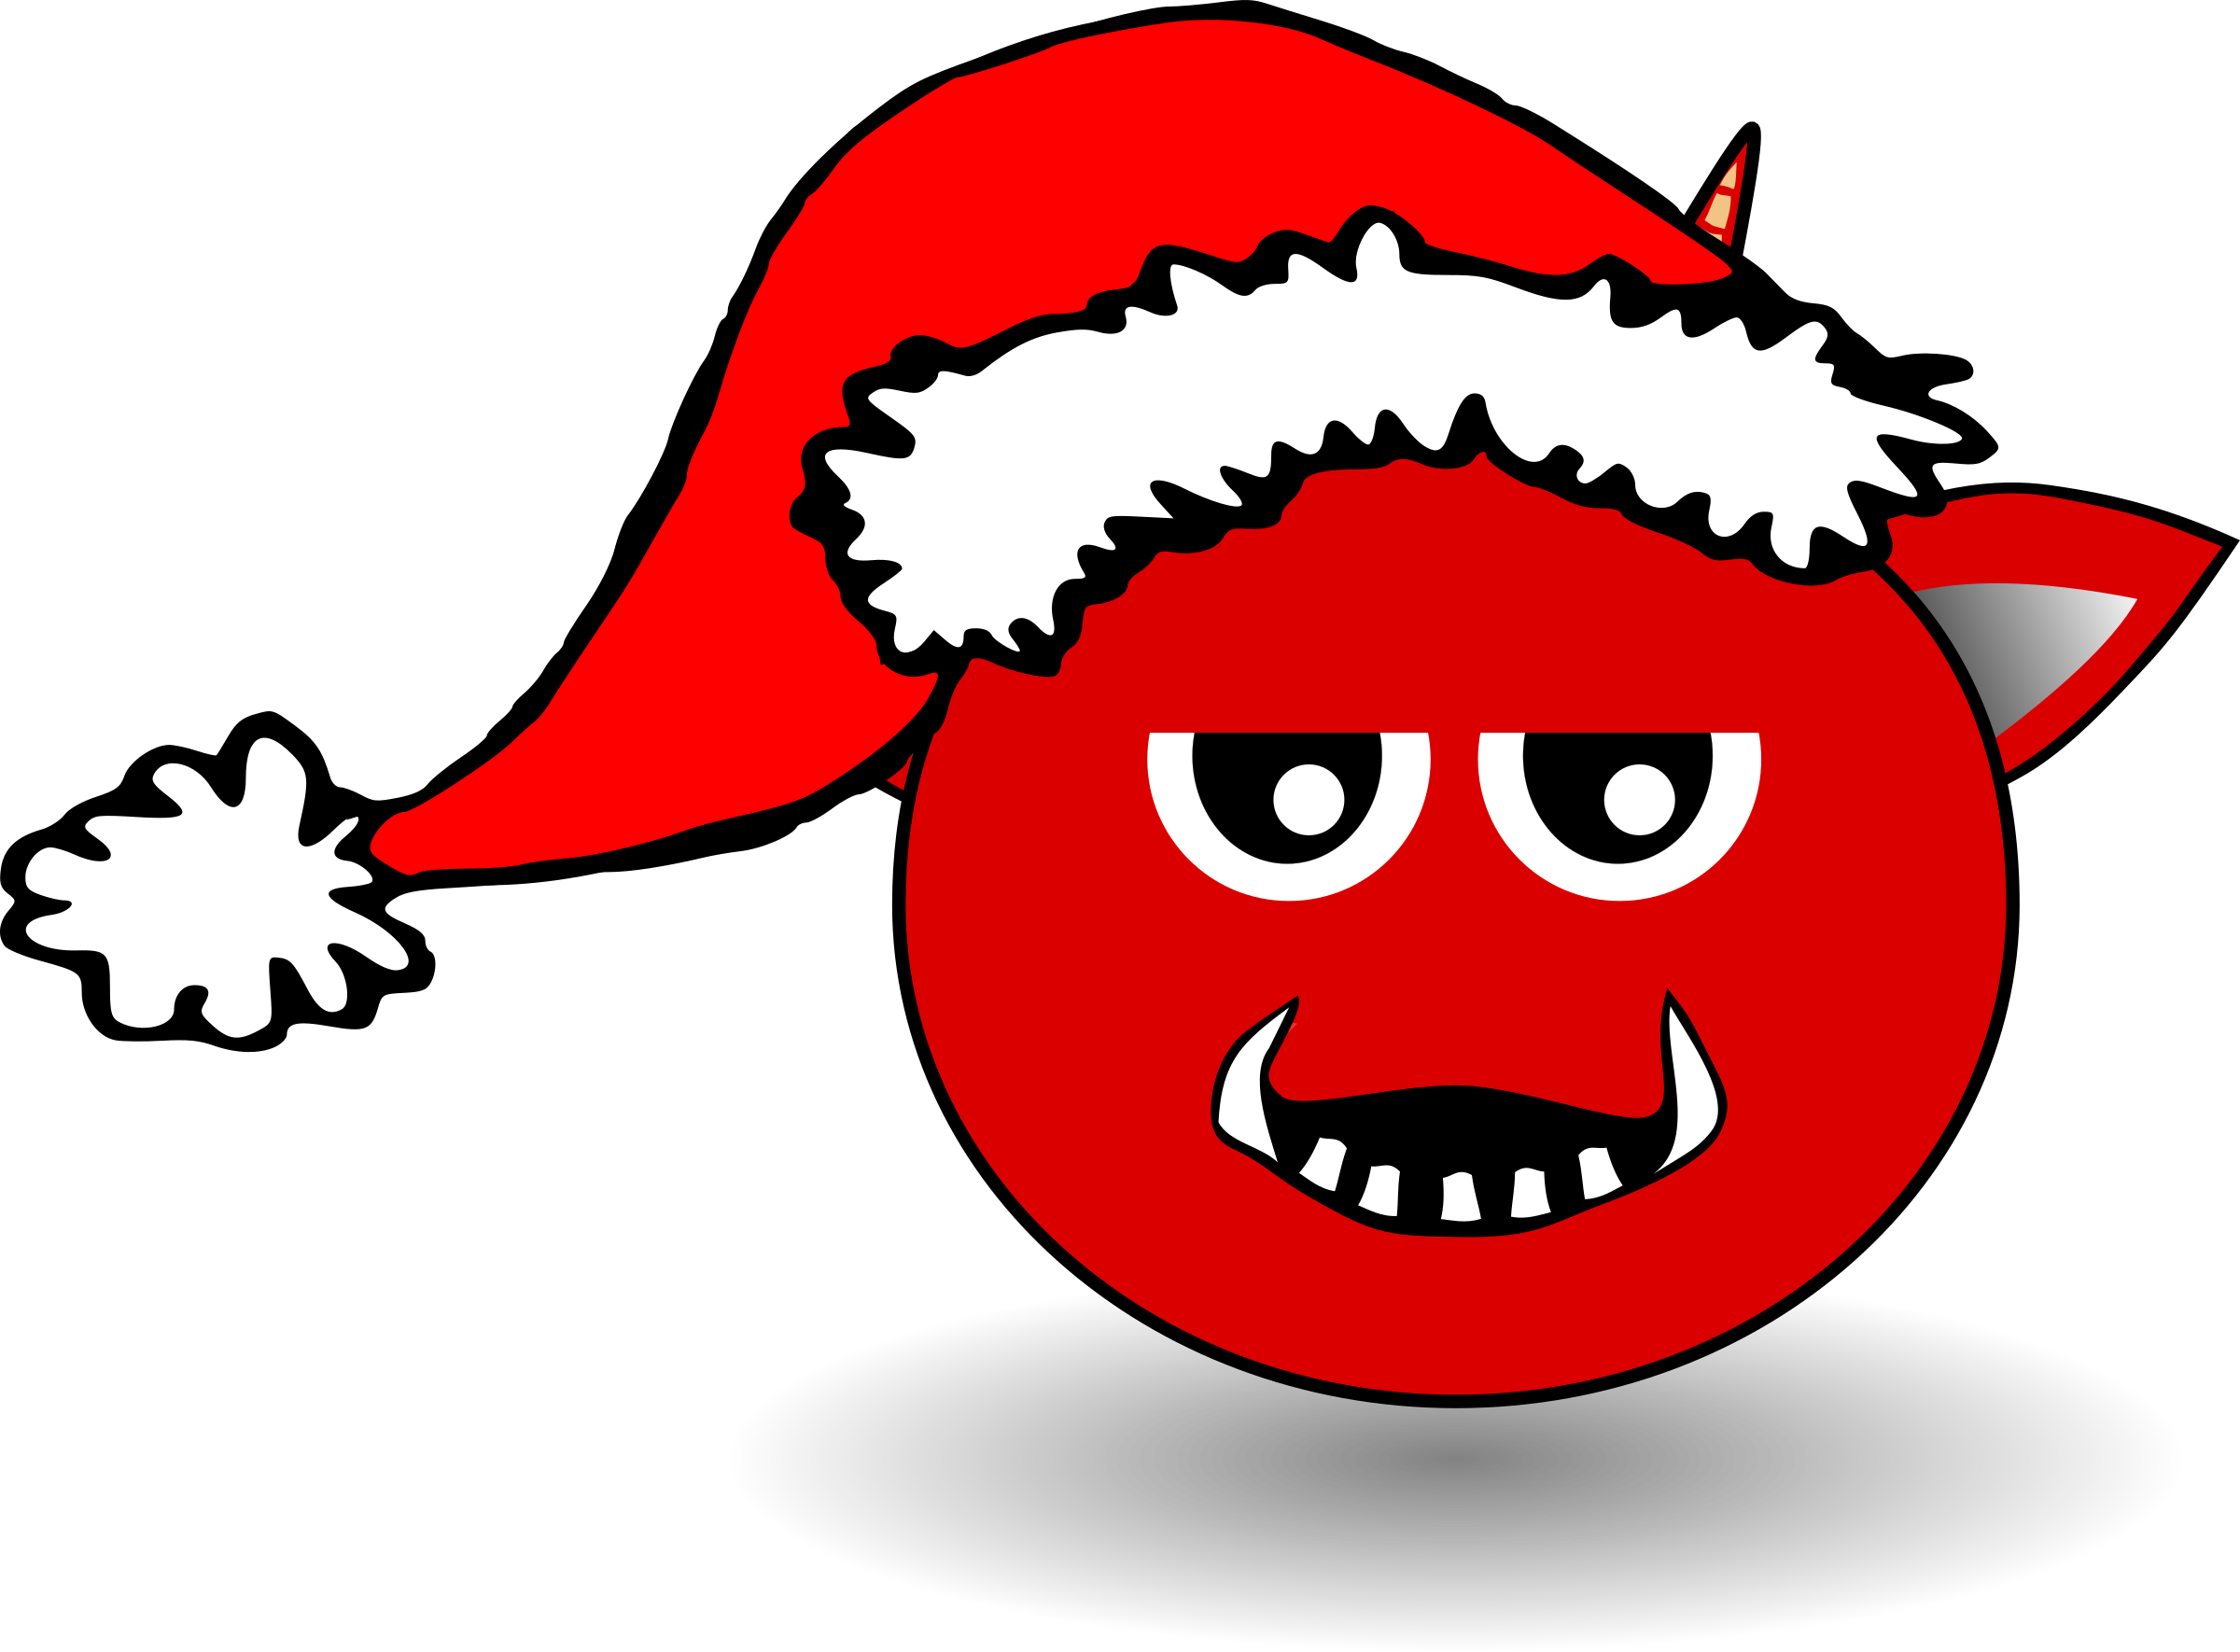 Little Red Devil Head Cartoon with Santa Claus hat by palomaironique